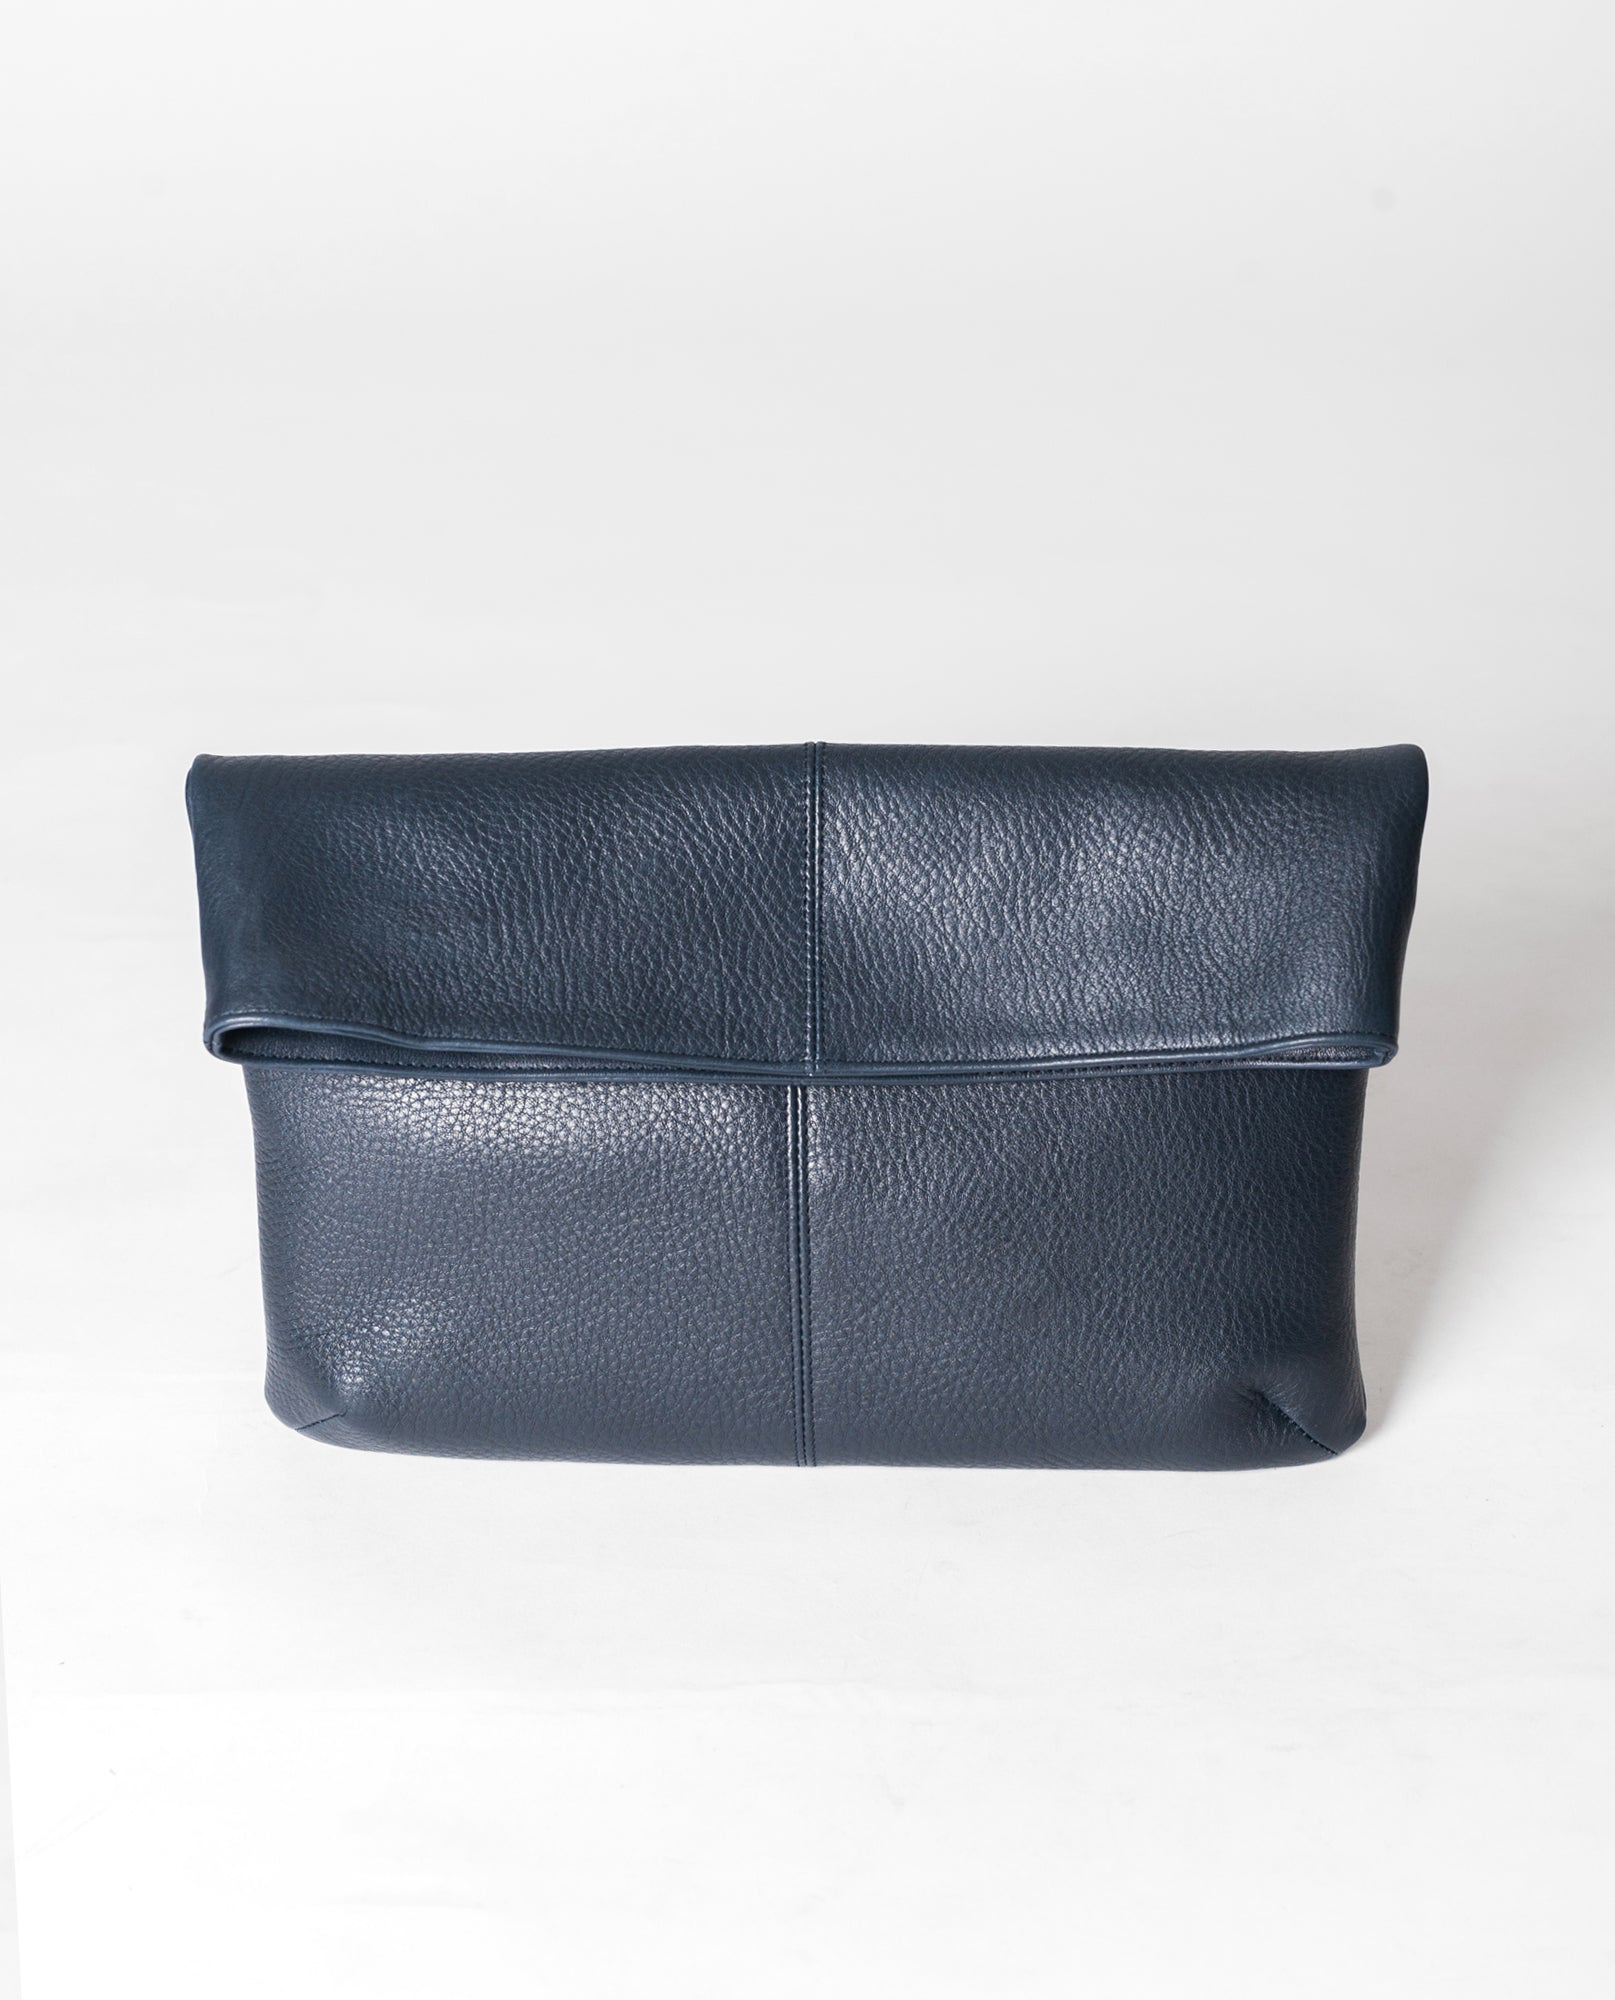 MONACO Leather Fold Over Clutch In Navy